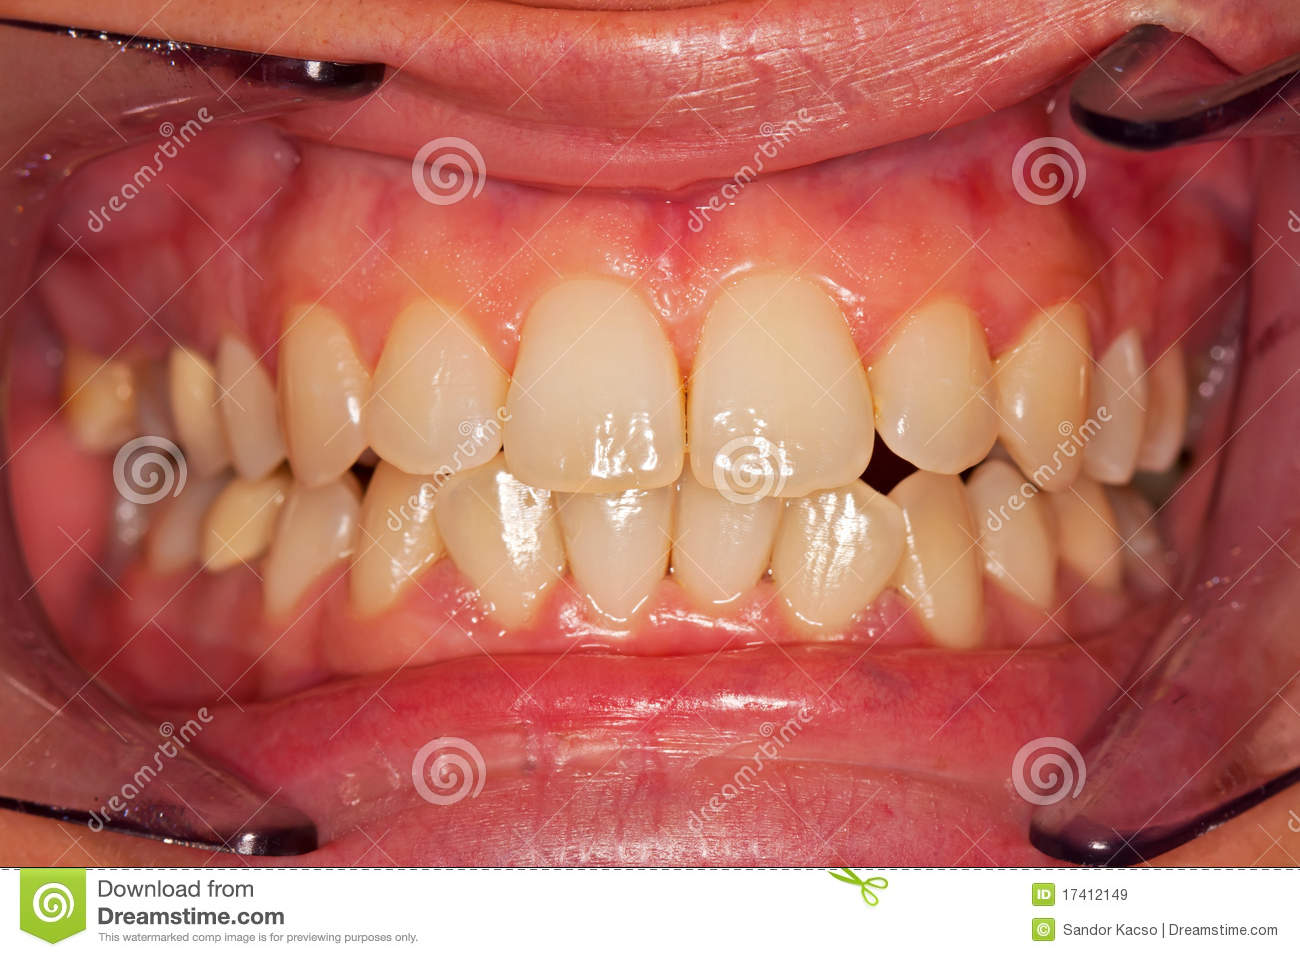 human teeth royalty free stock images - image: 17412149, Human Body